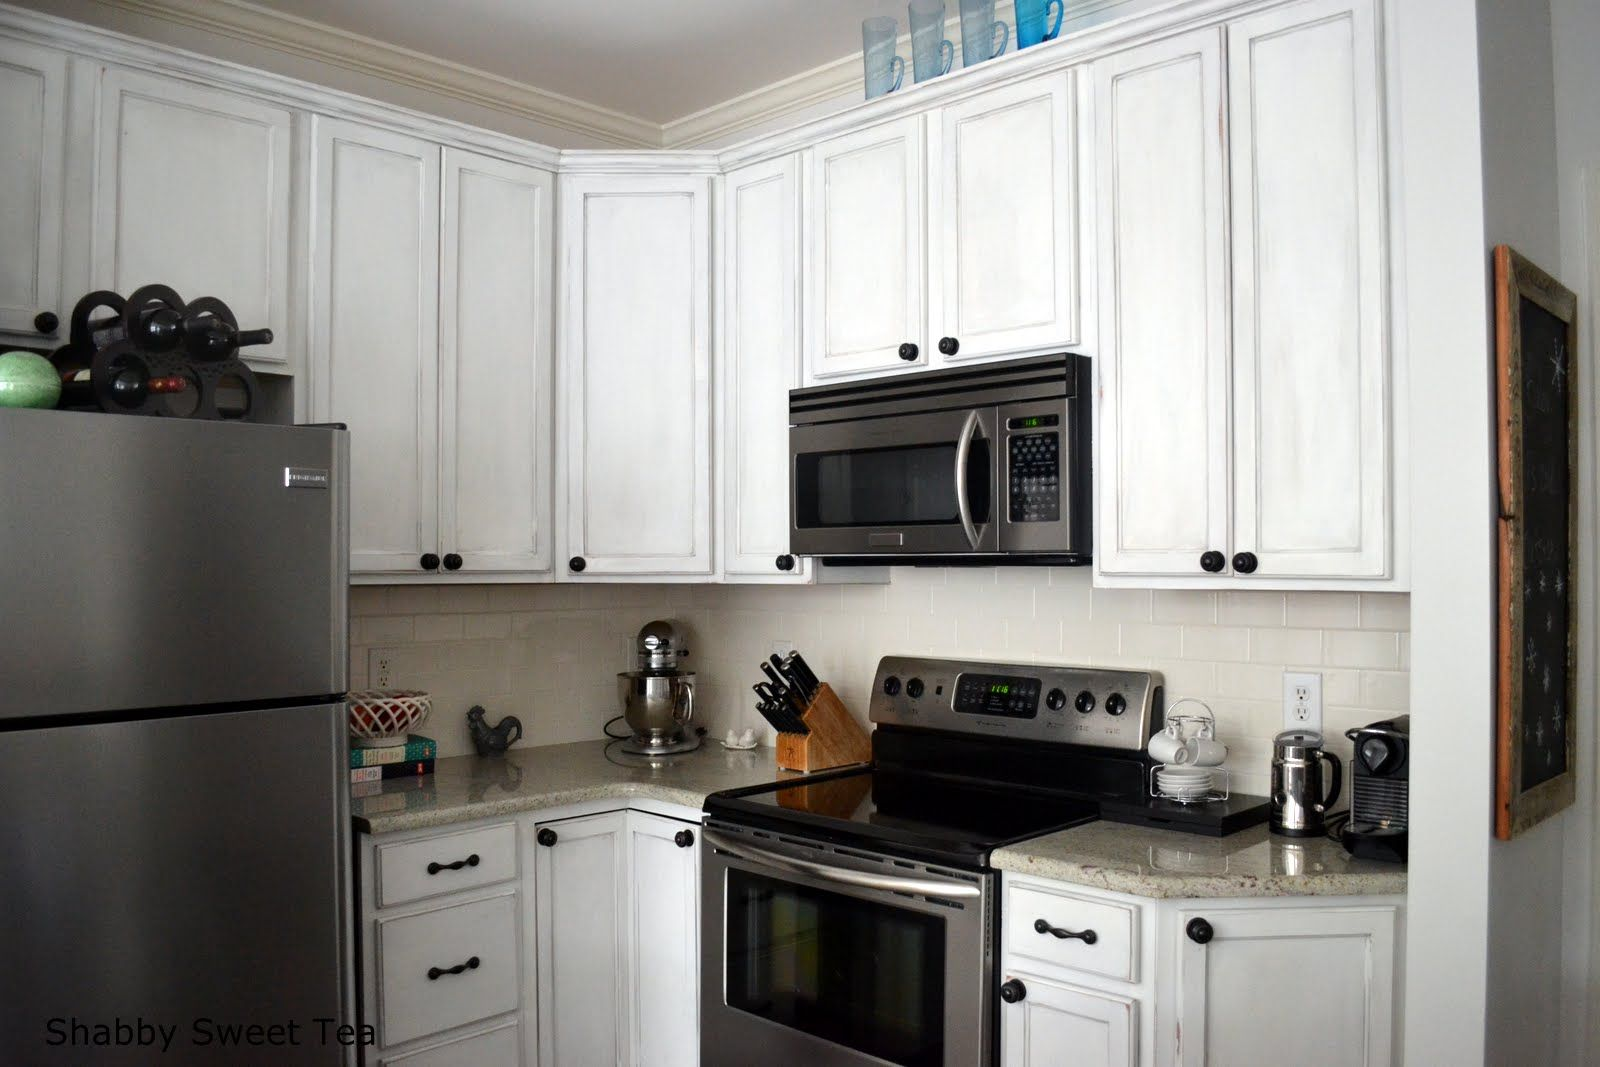 Pinheidi Goff On Kitchen Cabinets  Pinterest  Chalk Paint Magnificent How To Paint Kitchen Cabinets White Inspiration Design